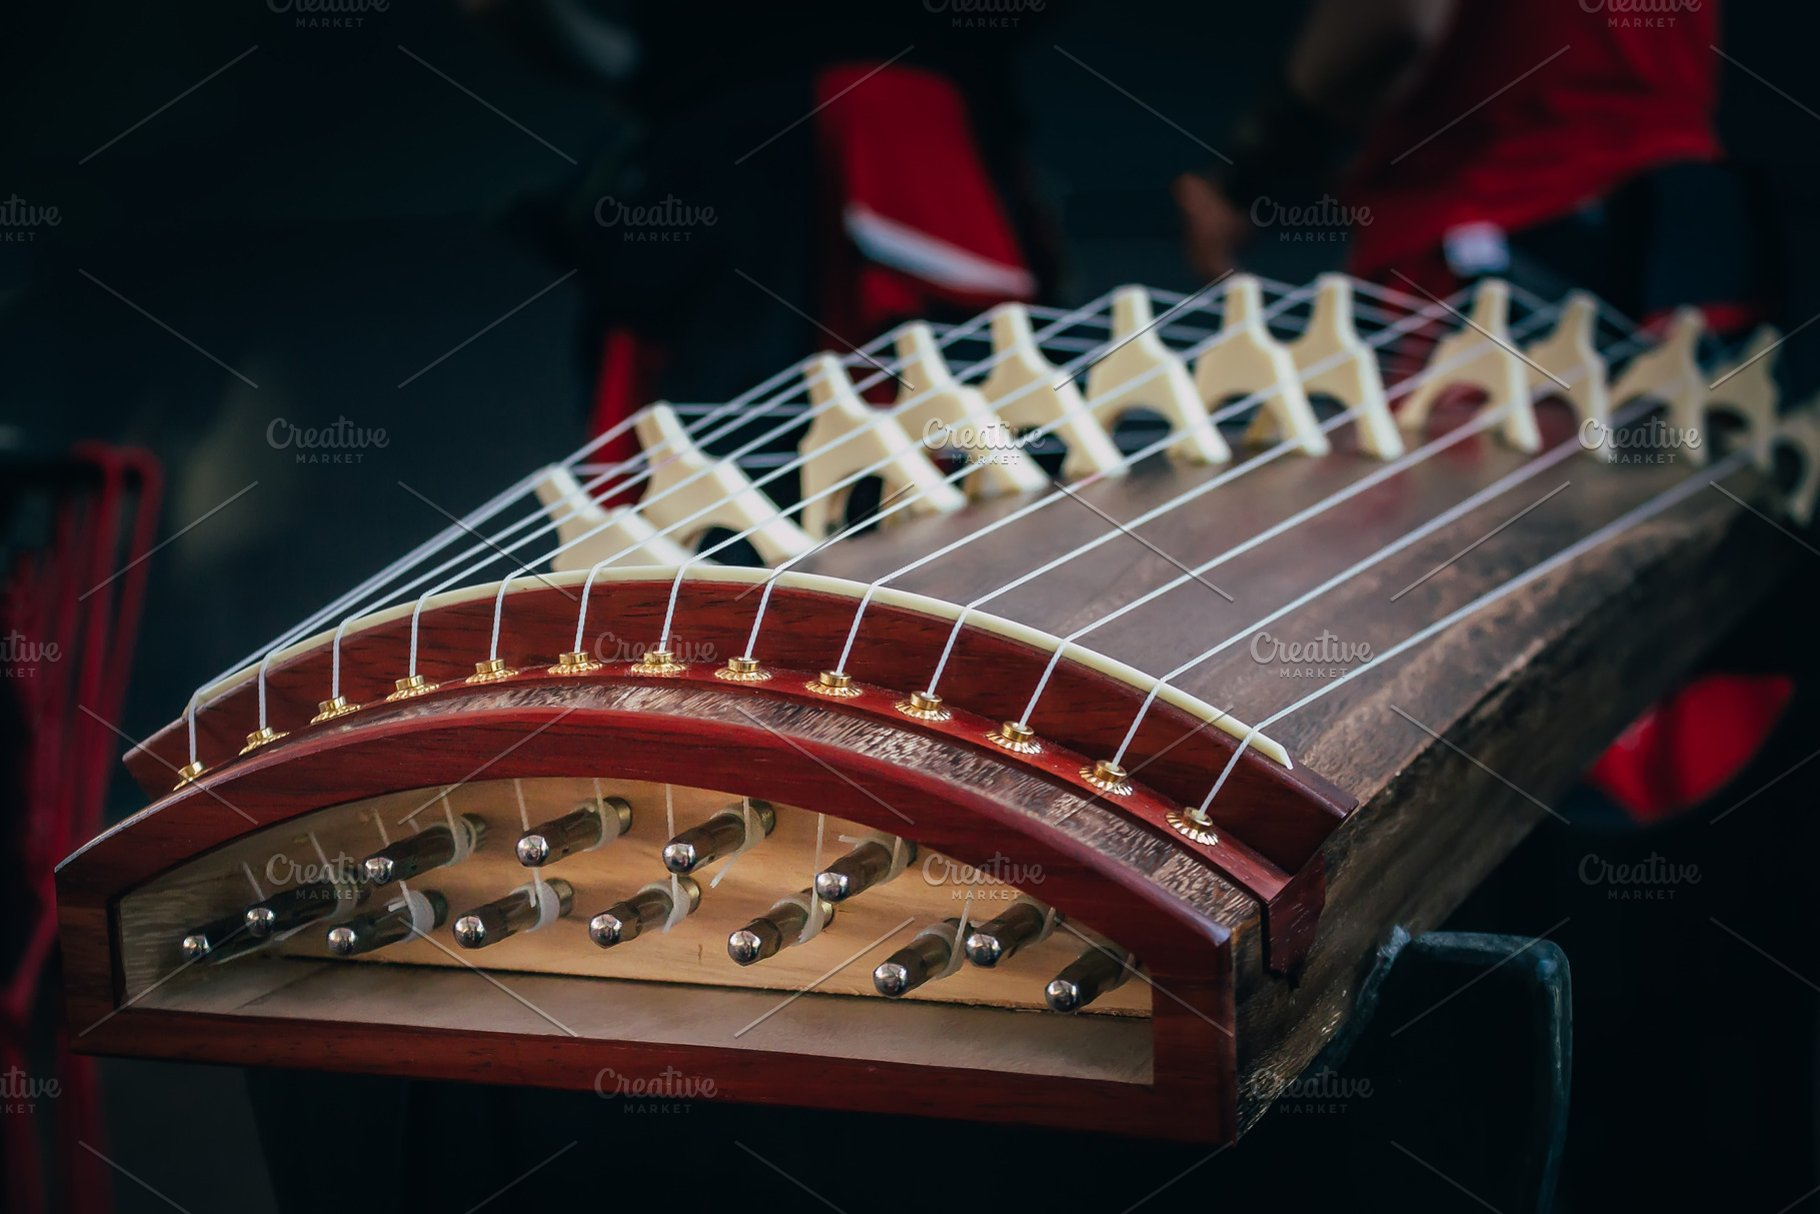 Musical String Instrument of easr asia koto yatga guzheng chinese zither,  zheng, gayageum om dark background  Selective focus on picture